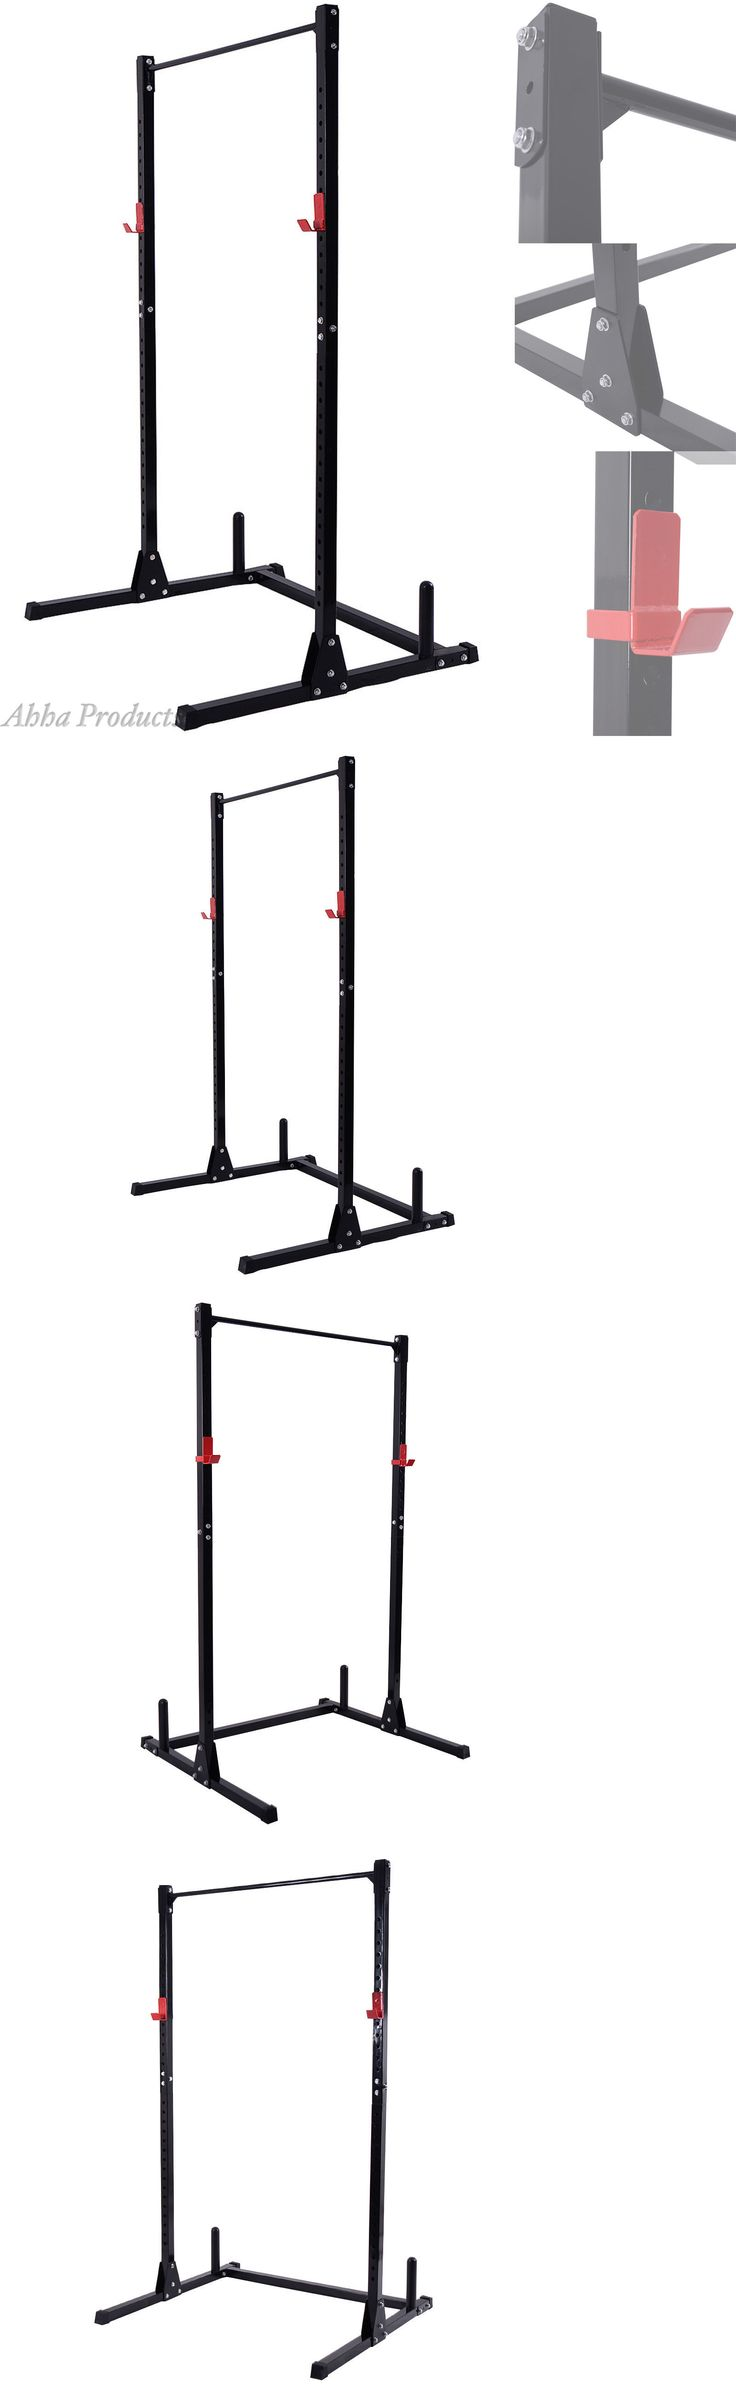 Power Racks and Smith Machines 179815: Adjustable Squat Bench Pull Up Bar Station Weight Lifting Rack Stand Holder Gym -> BUY IT NOW ONLY: $128.79 on eBay!